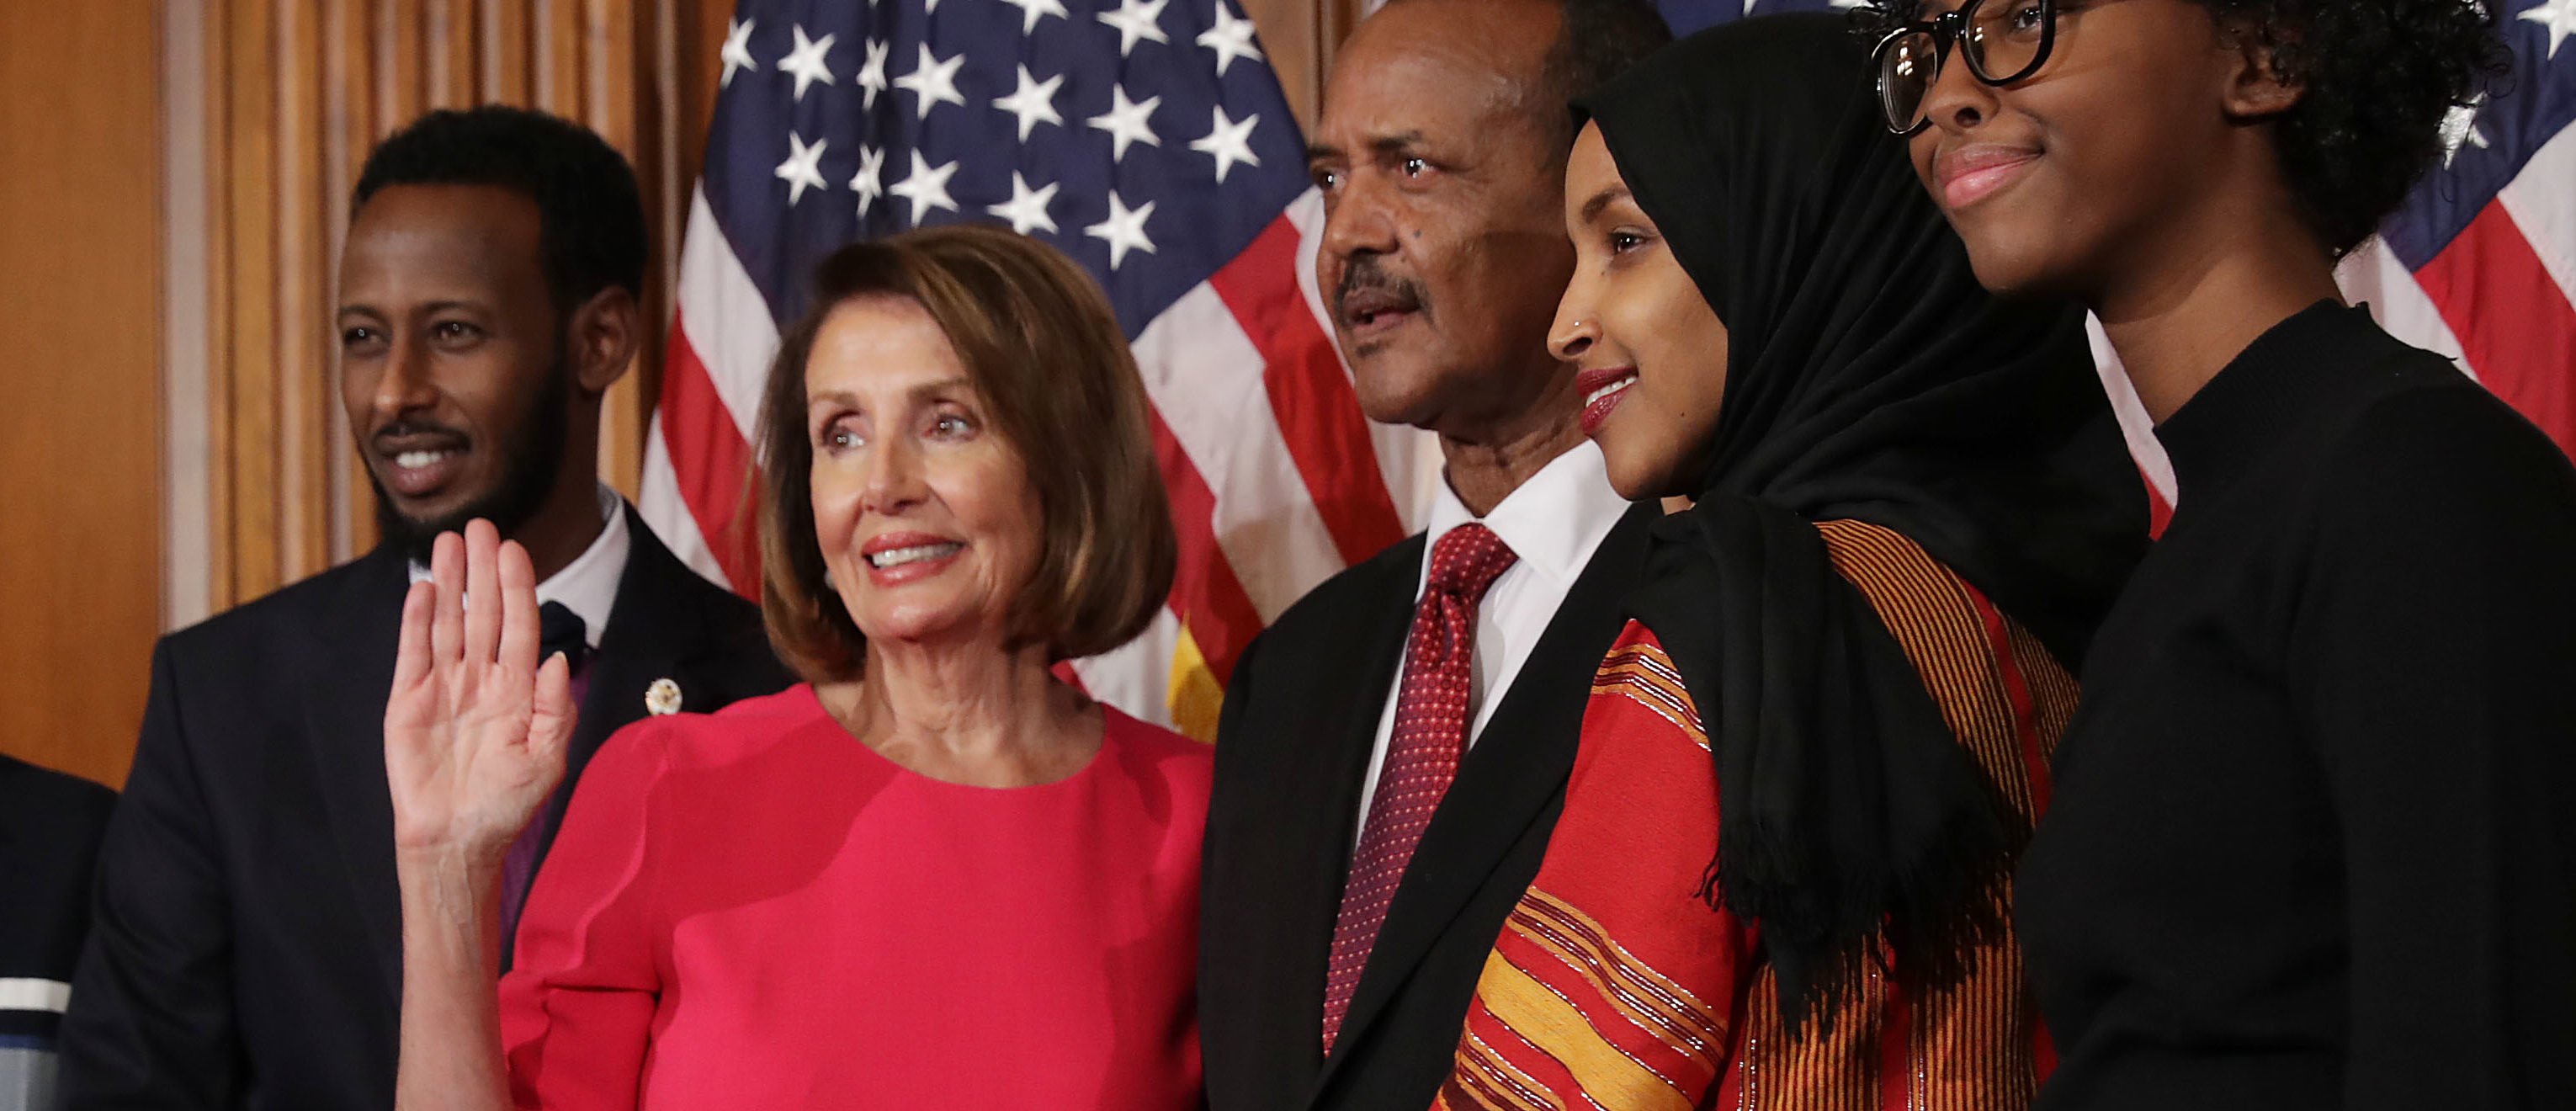 Speaker of the House Nancy Pelosi (D-CA) poses for photographs with Rep. Ilhan Omar (D-MN) and her family in the Rayburn Room at the U.S. Capitol January 03, 2019 in Washington, DC. (Photo by Chip Somodevilla/Getty Images)